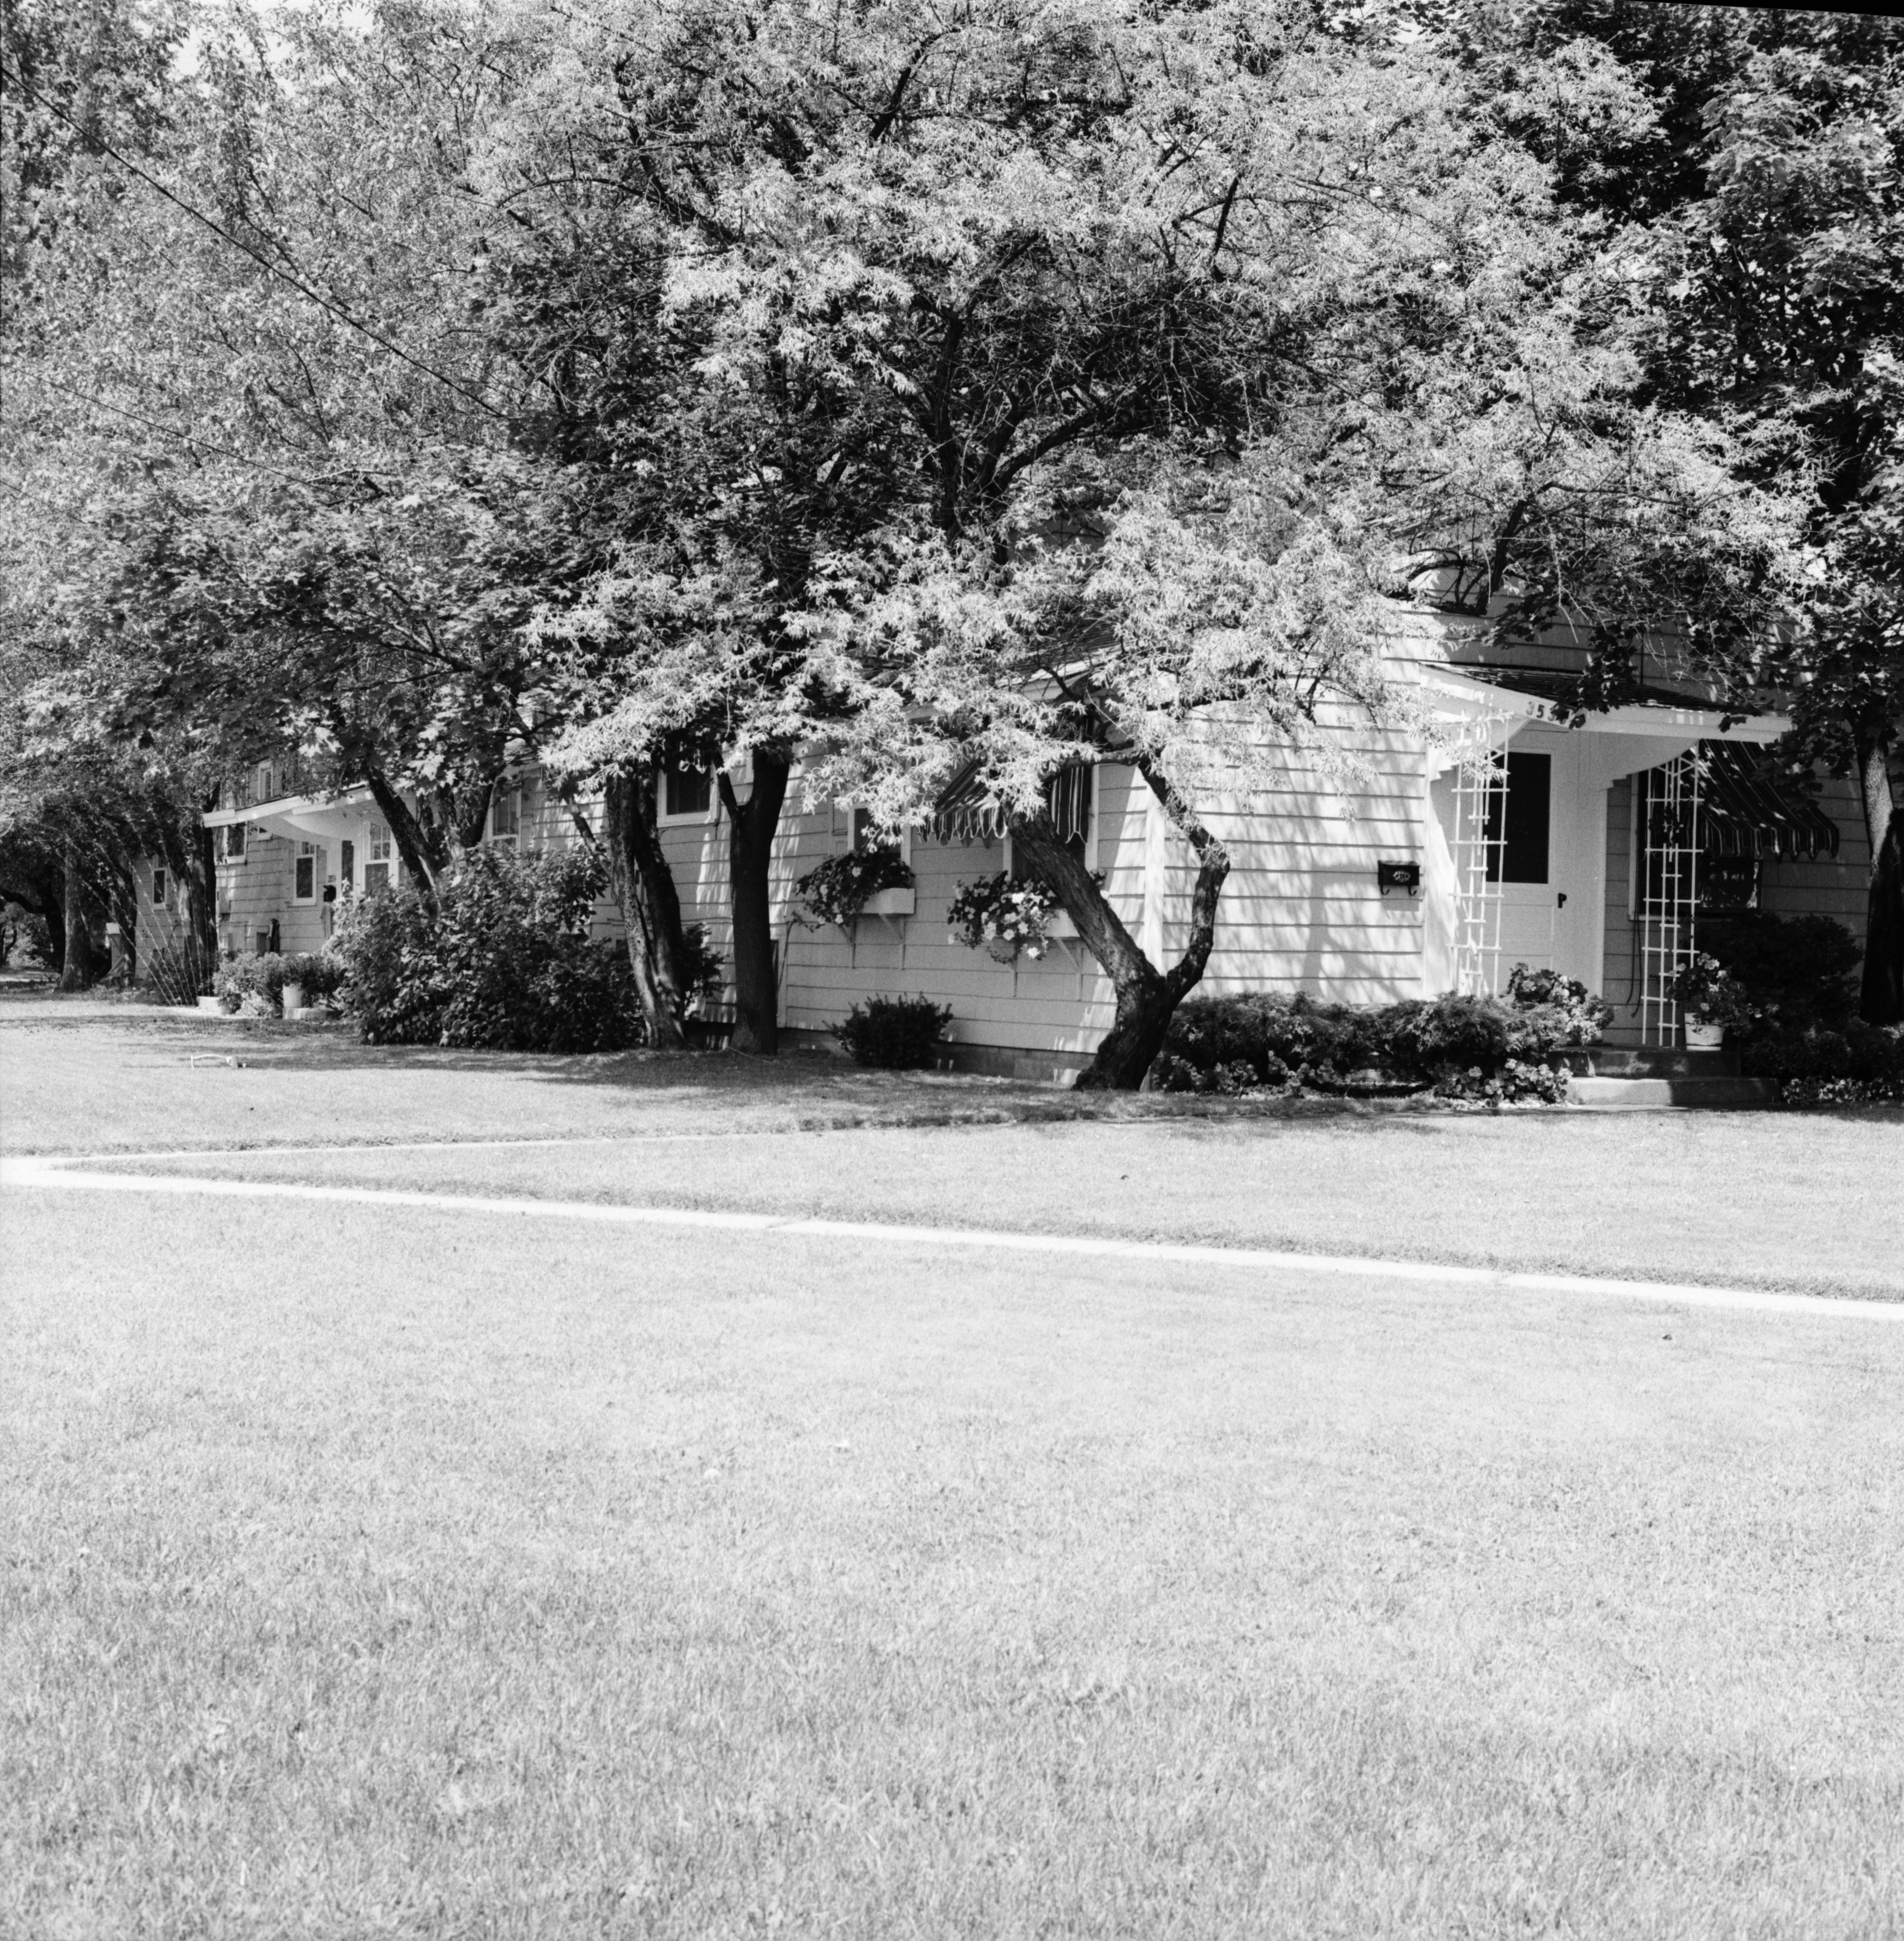 View of Home in Pittsfield Village, August 1973 image